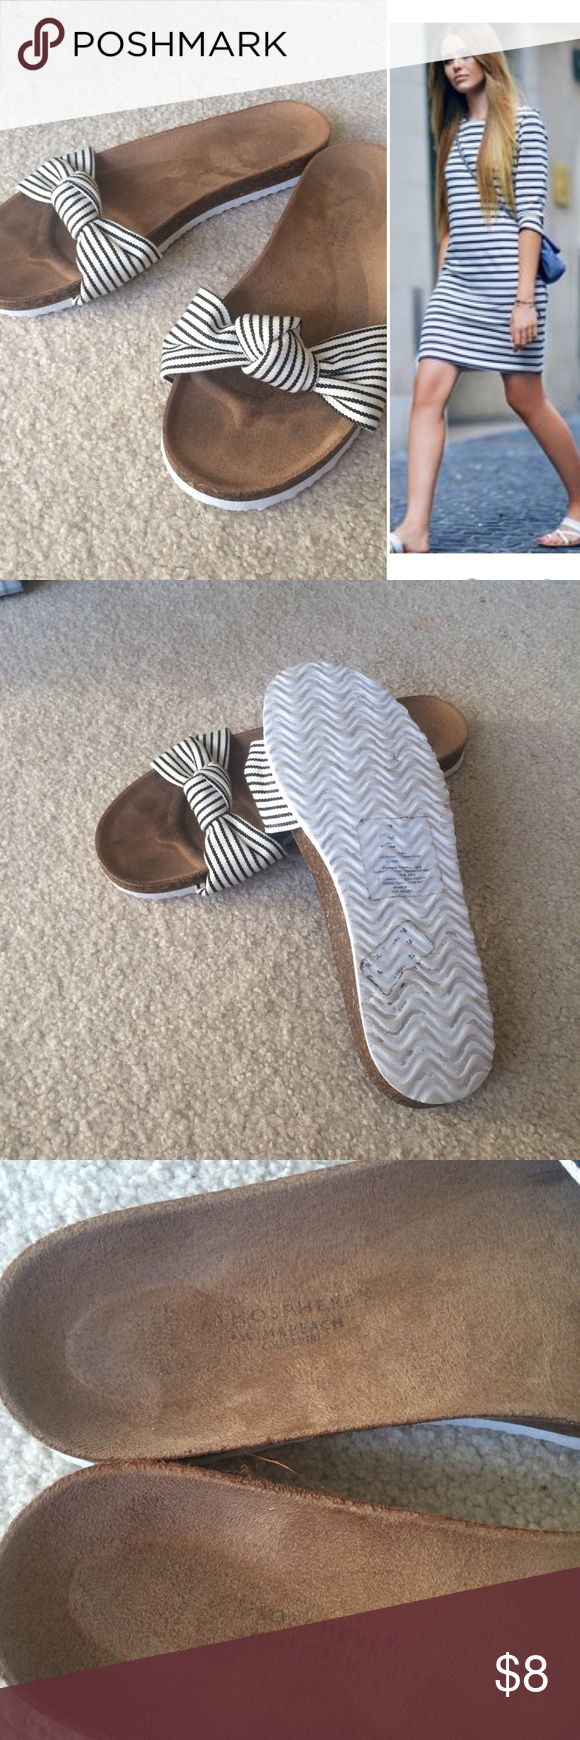 SALE ✂️ Striped Slip-ons Gently worn, in great condition. Purchased from Primark. Go with everything! Navy and white stripes. Atmosphere Shoes Sandals